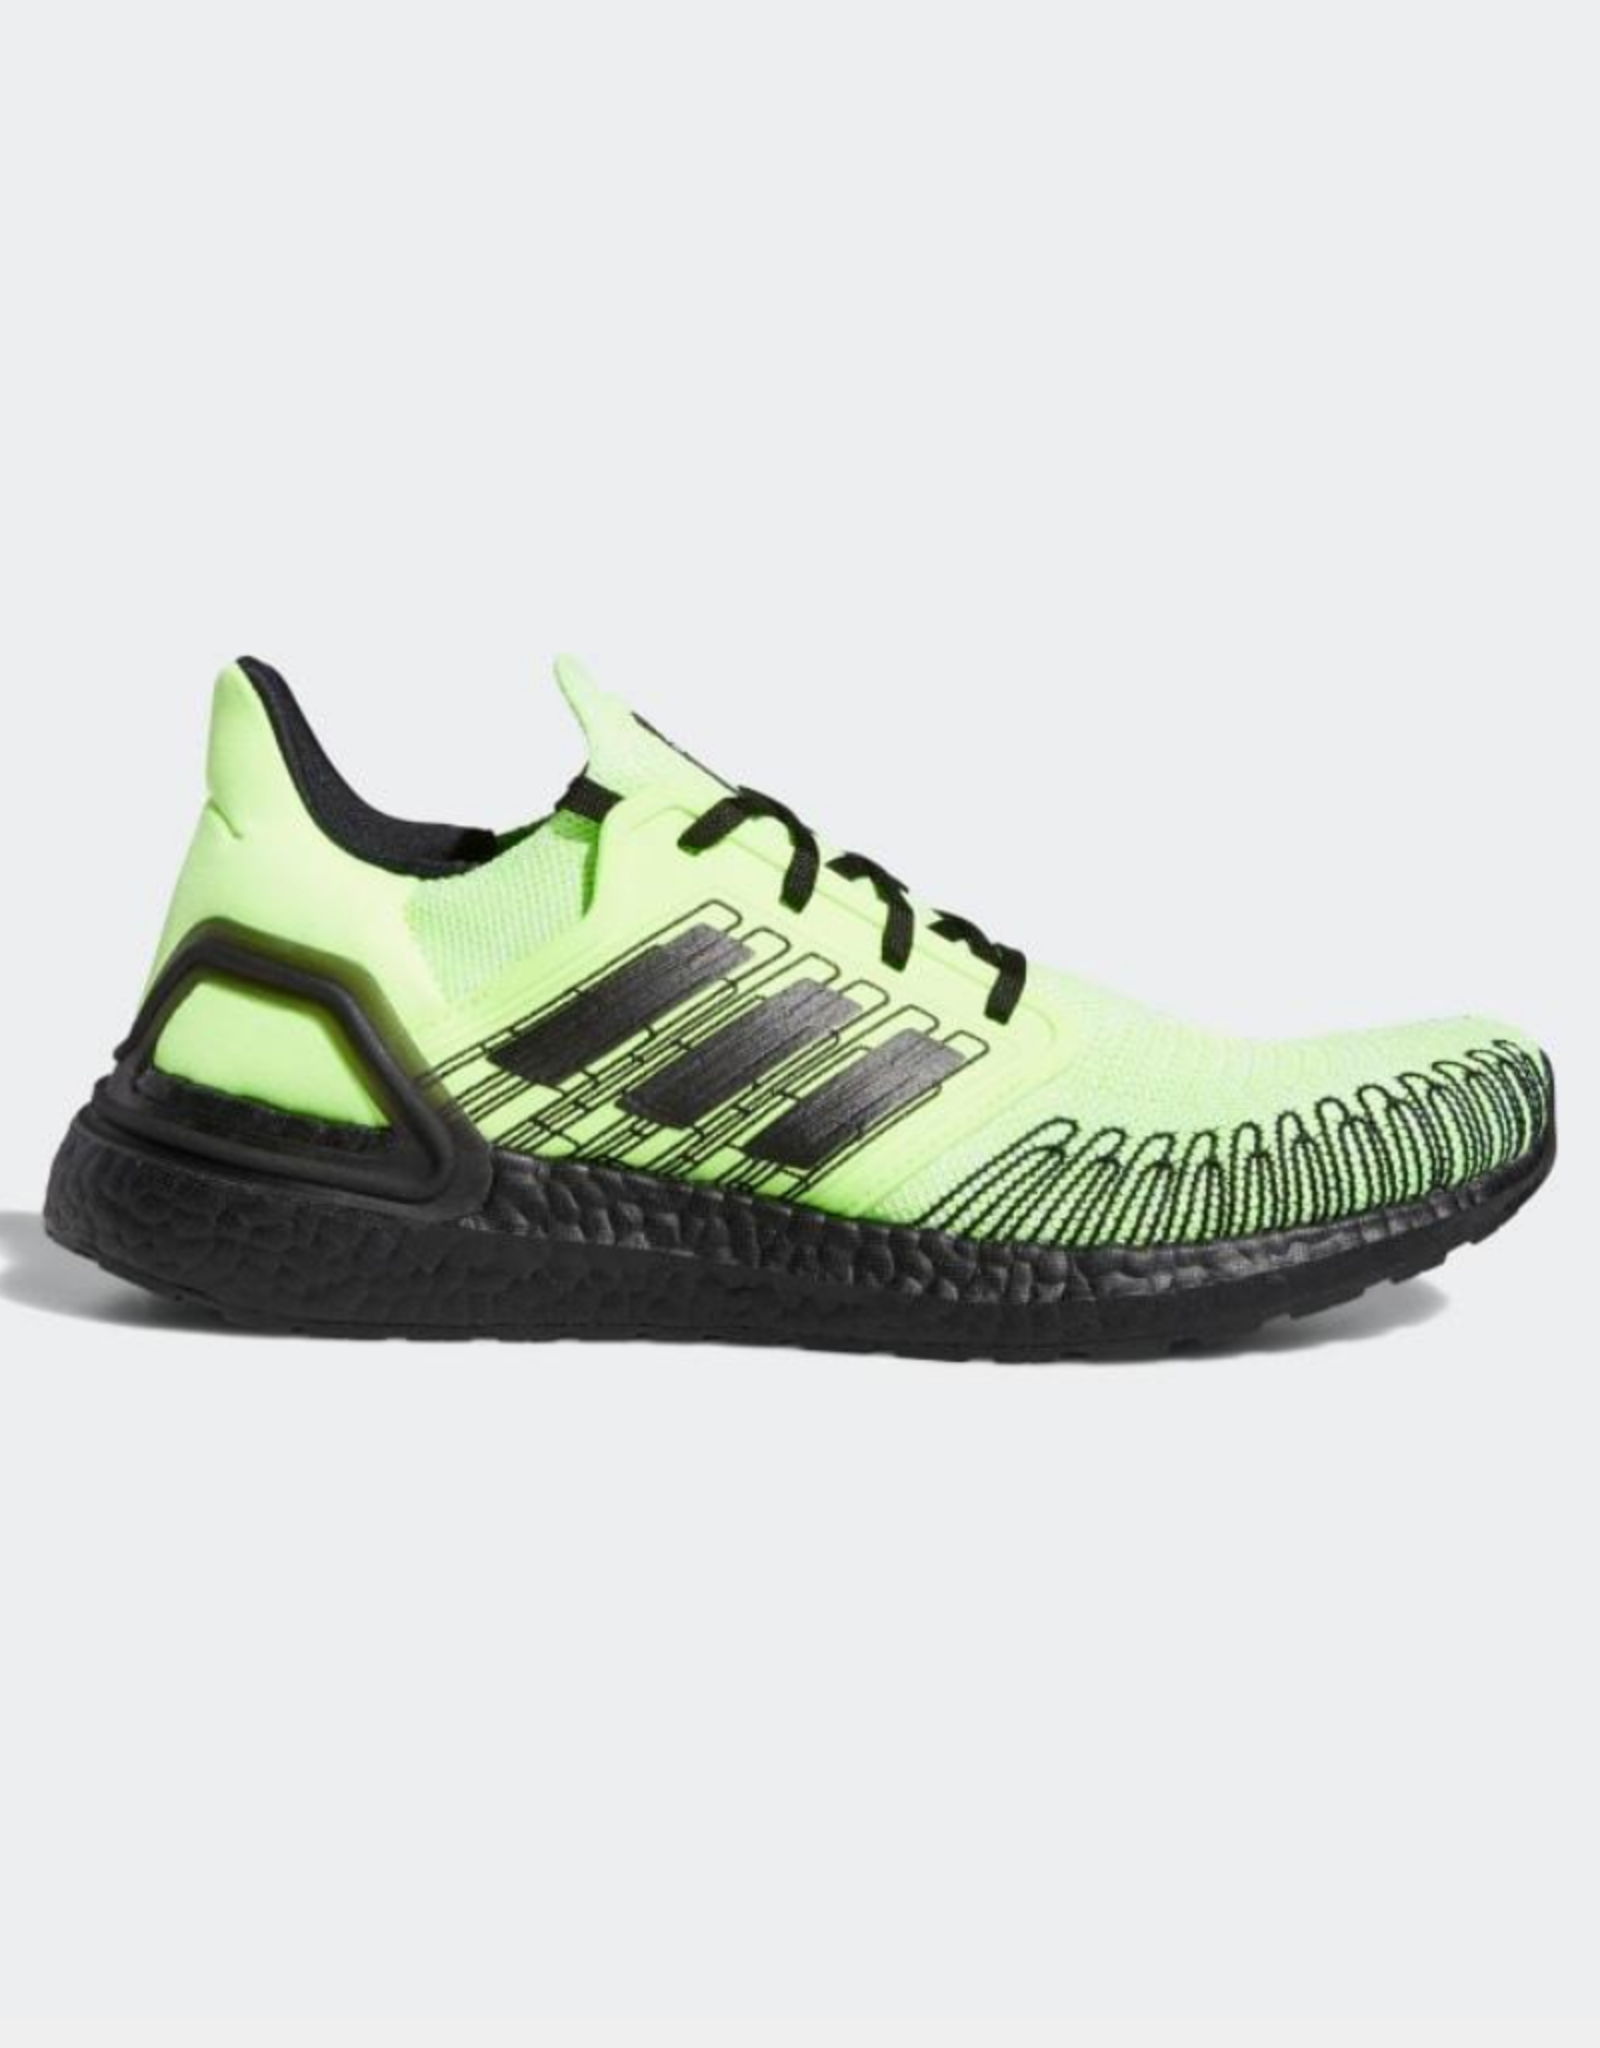 ADIDAS ULTRABOOST 20 GREEN/BLACK FY8984